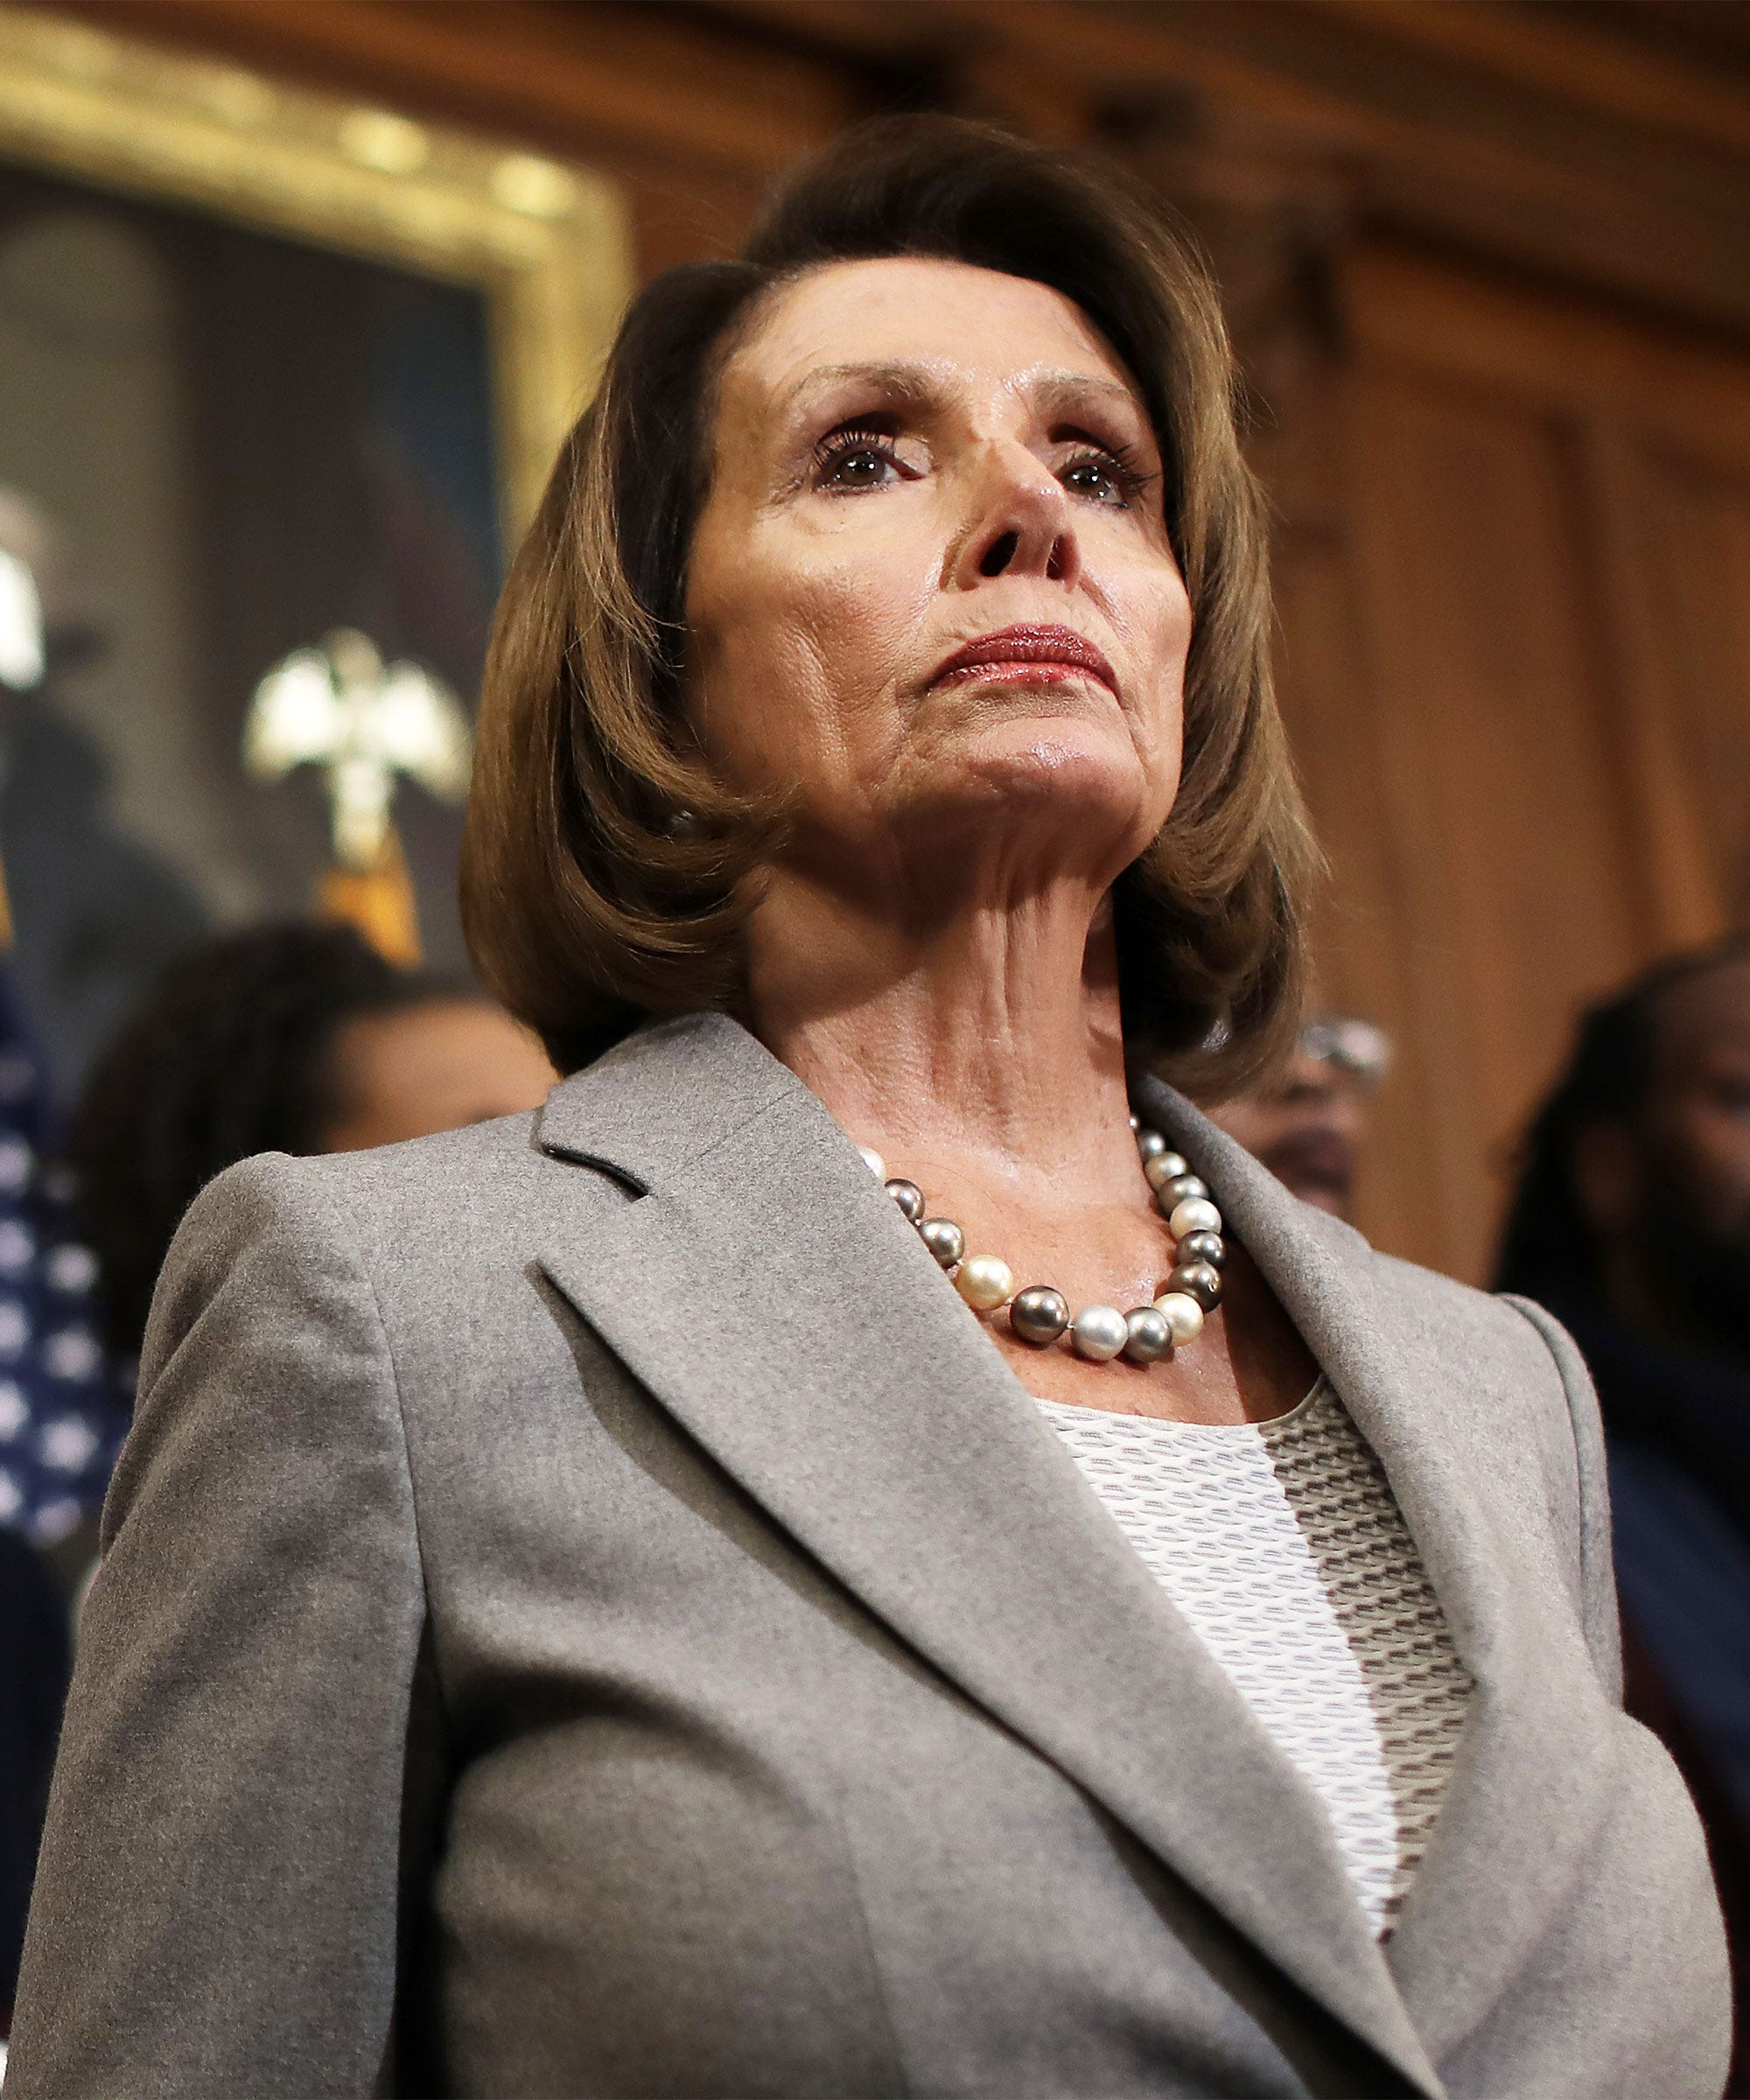 Nancy Pelosi's Body Language Sends A Strong Message About Her Feelings On Kellyanne Conway, Expert Says